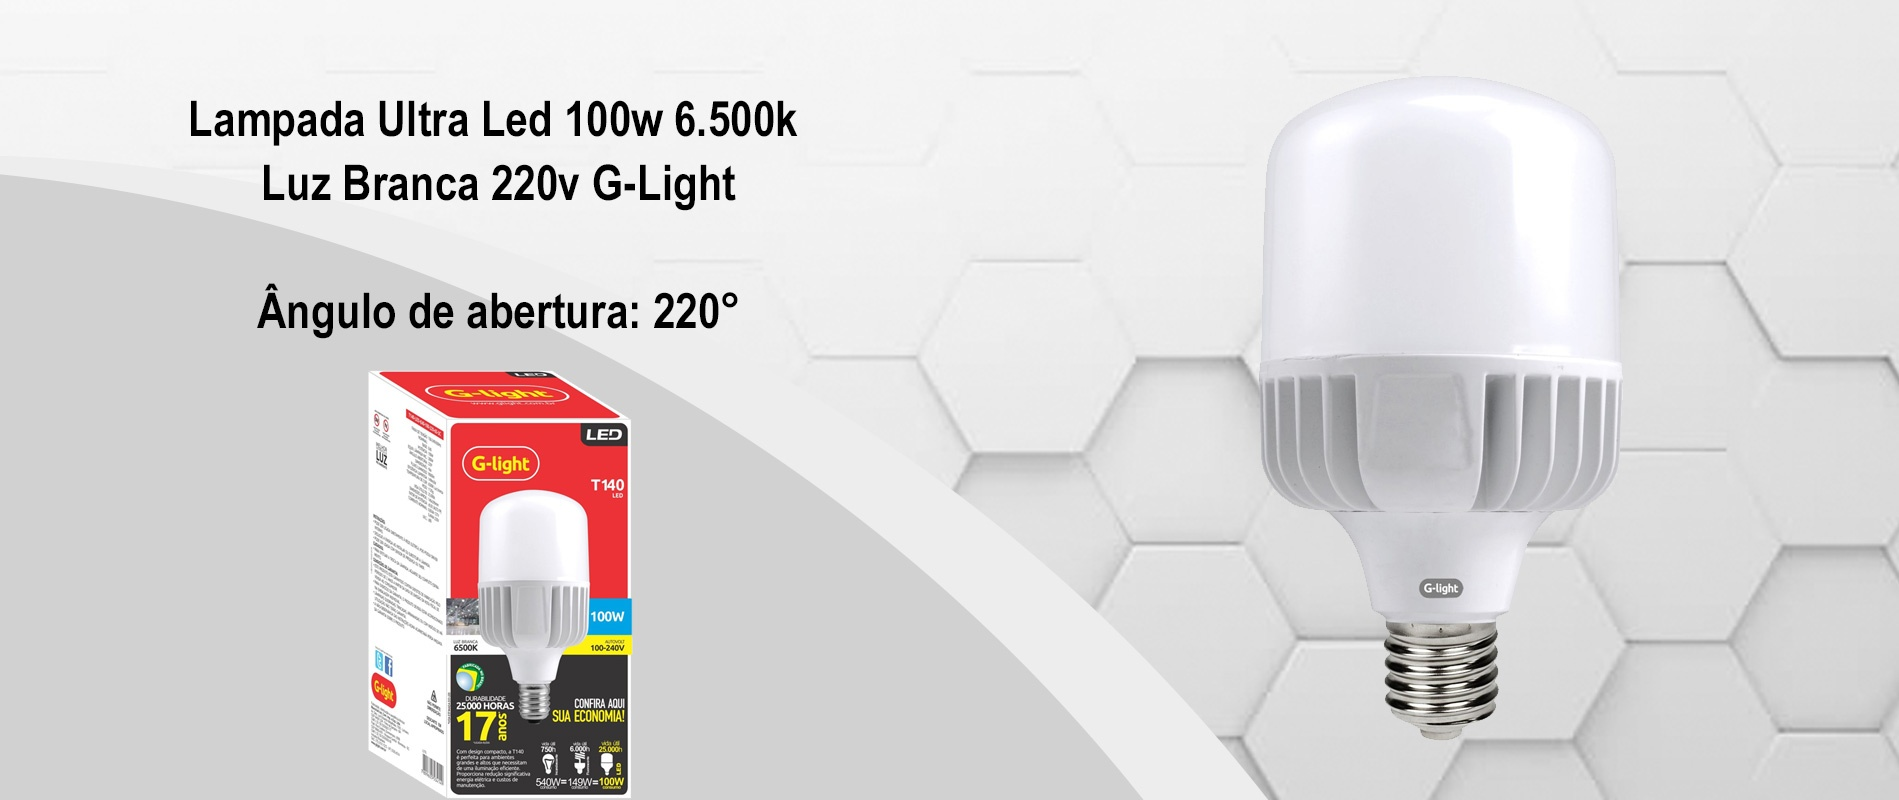 Lâmpada Ultra Led 100w 6.500k Luz Branca 220v G-Light